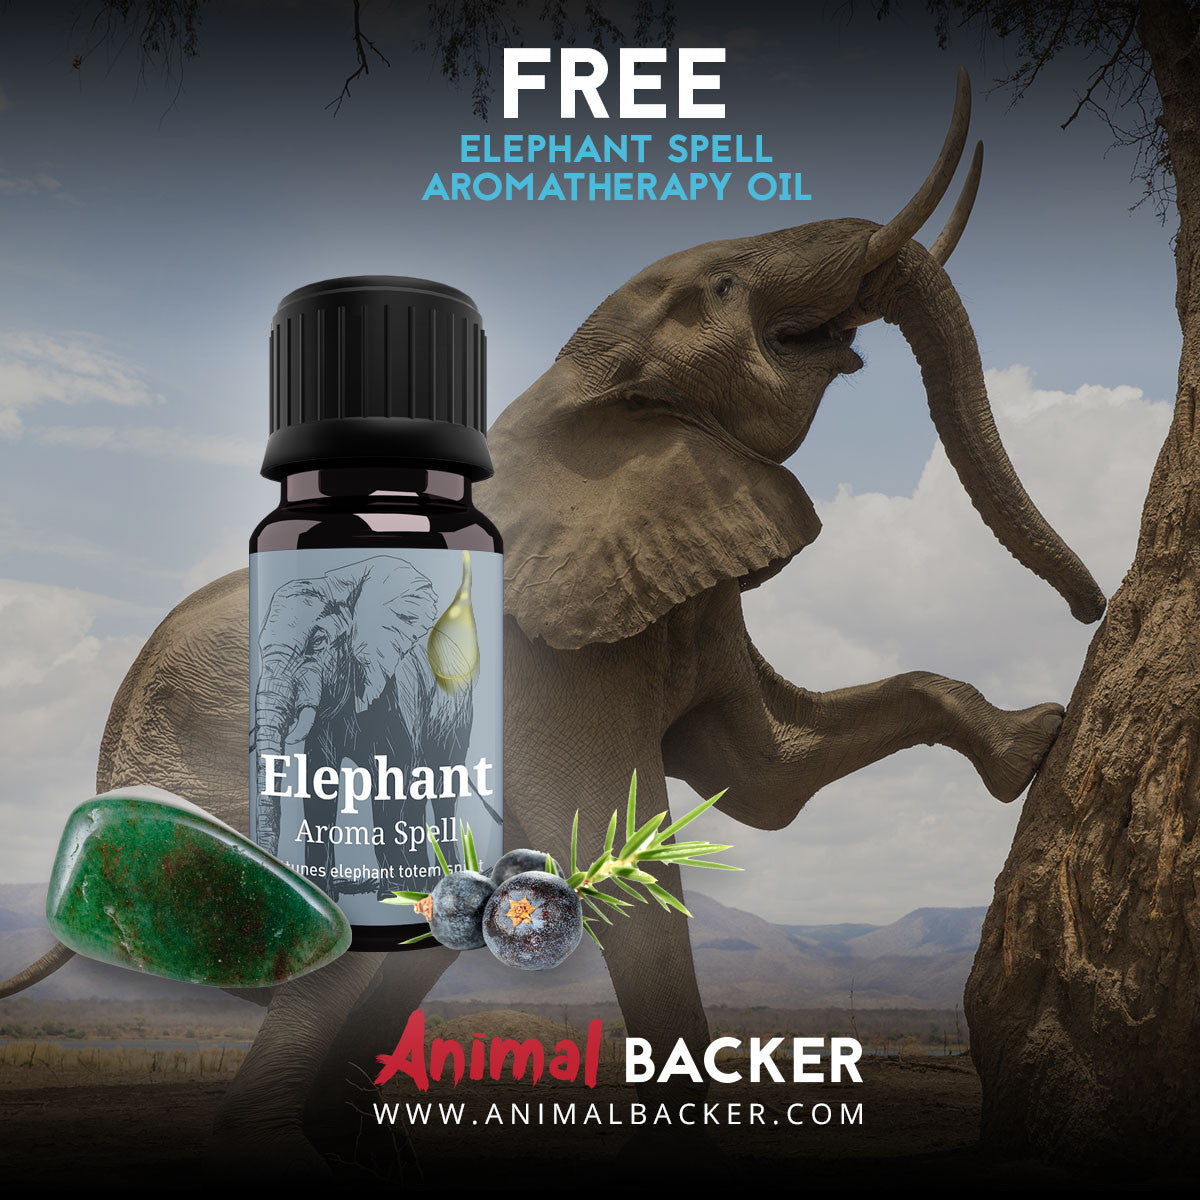 FREE ELEPHANT SPELL AROMATHERAPY OIL